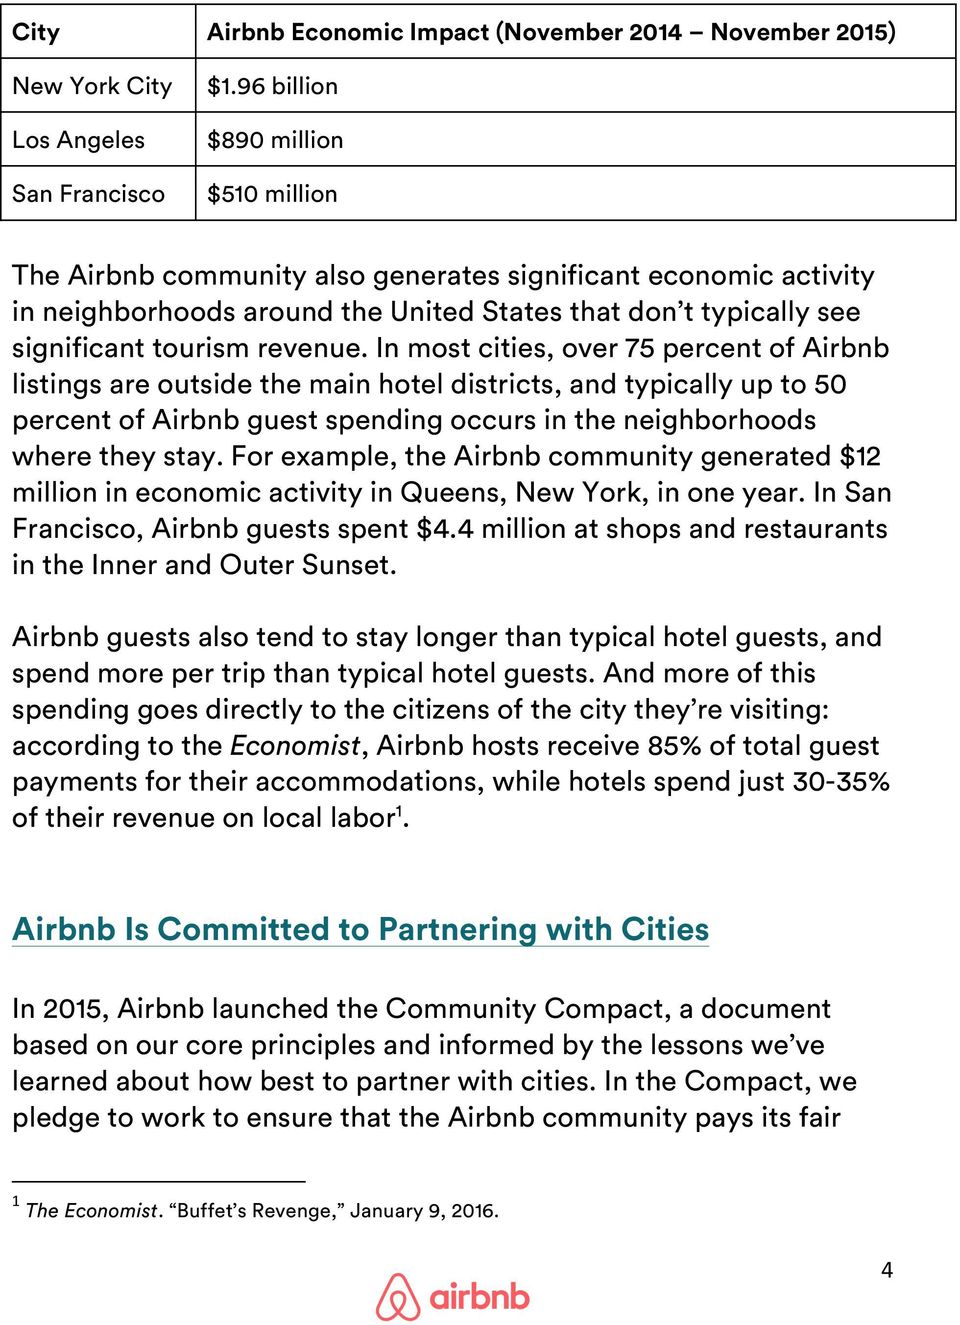 In most cities, over 75 percent of Airbnb listings are outside the main hotel districts, and typically up to 50 percent of Airbnb guest spending occurs in the neighborhoods where they stay.